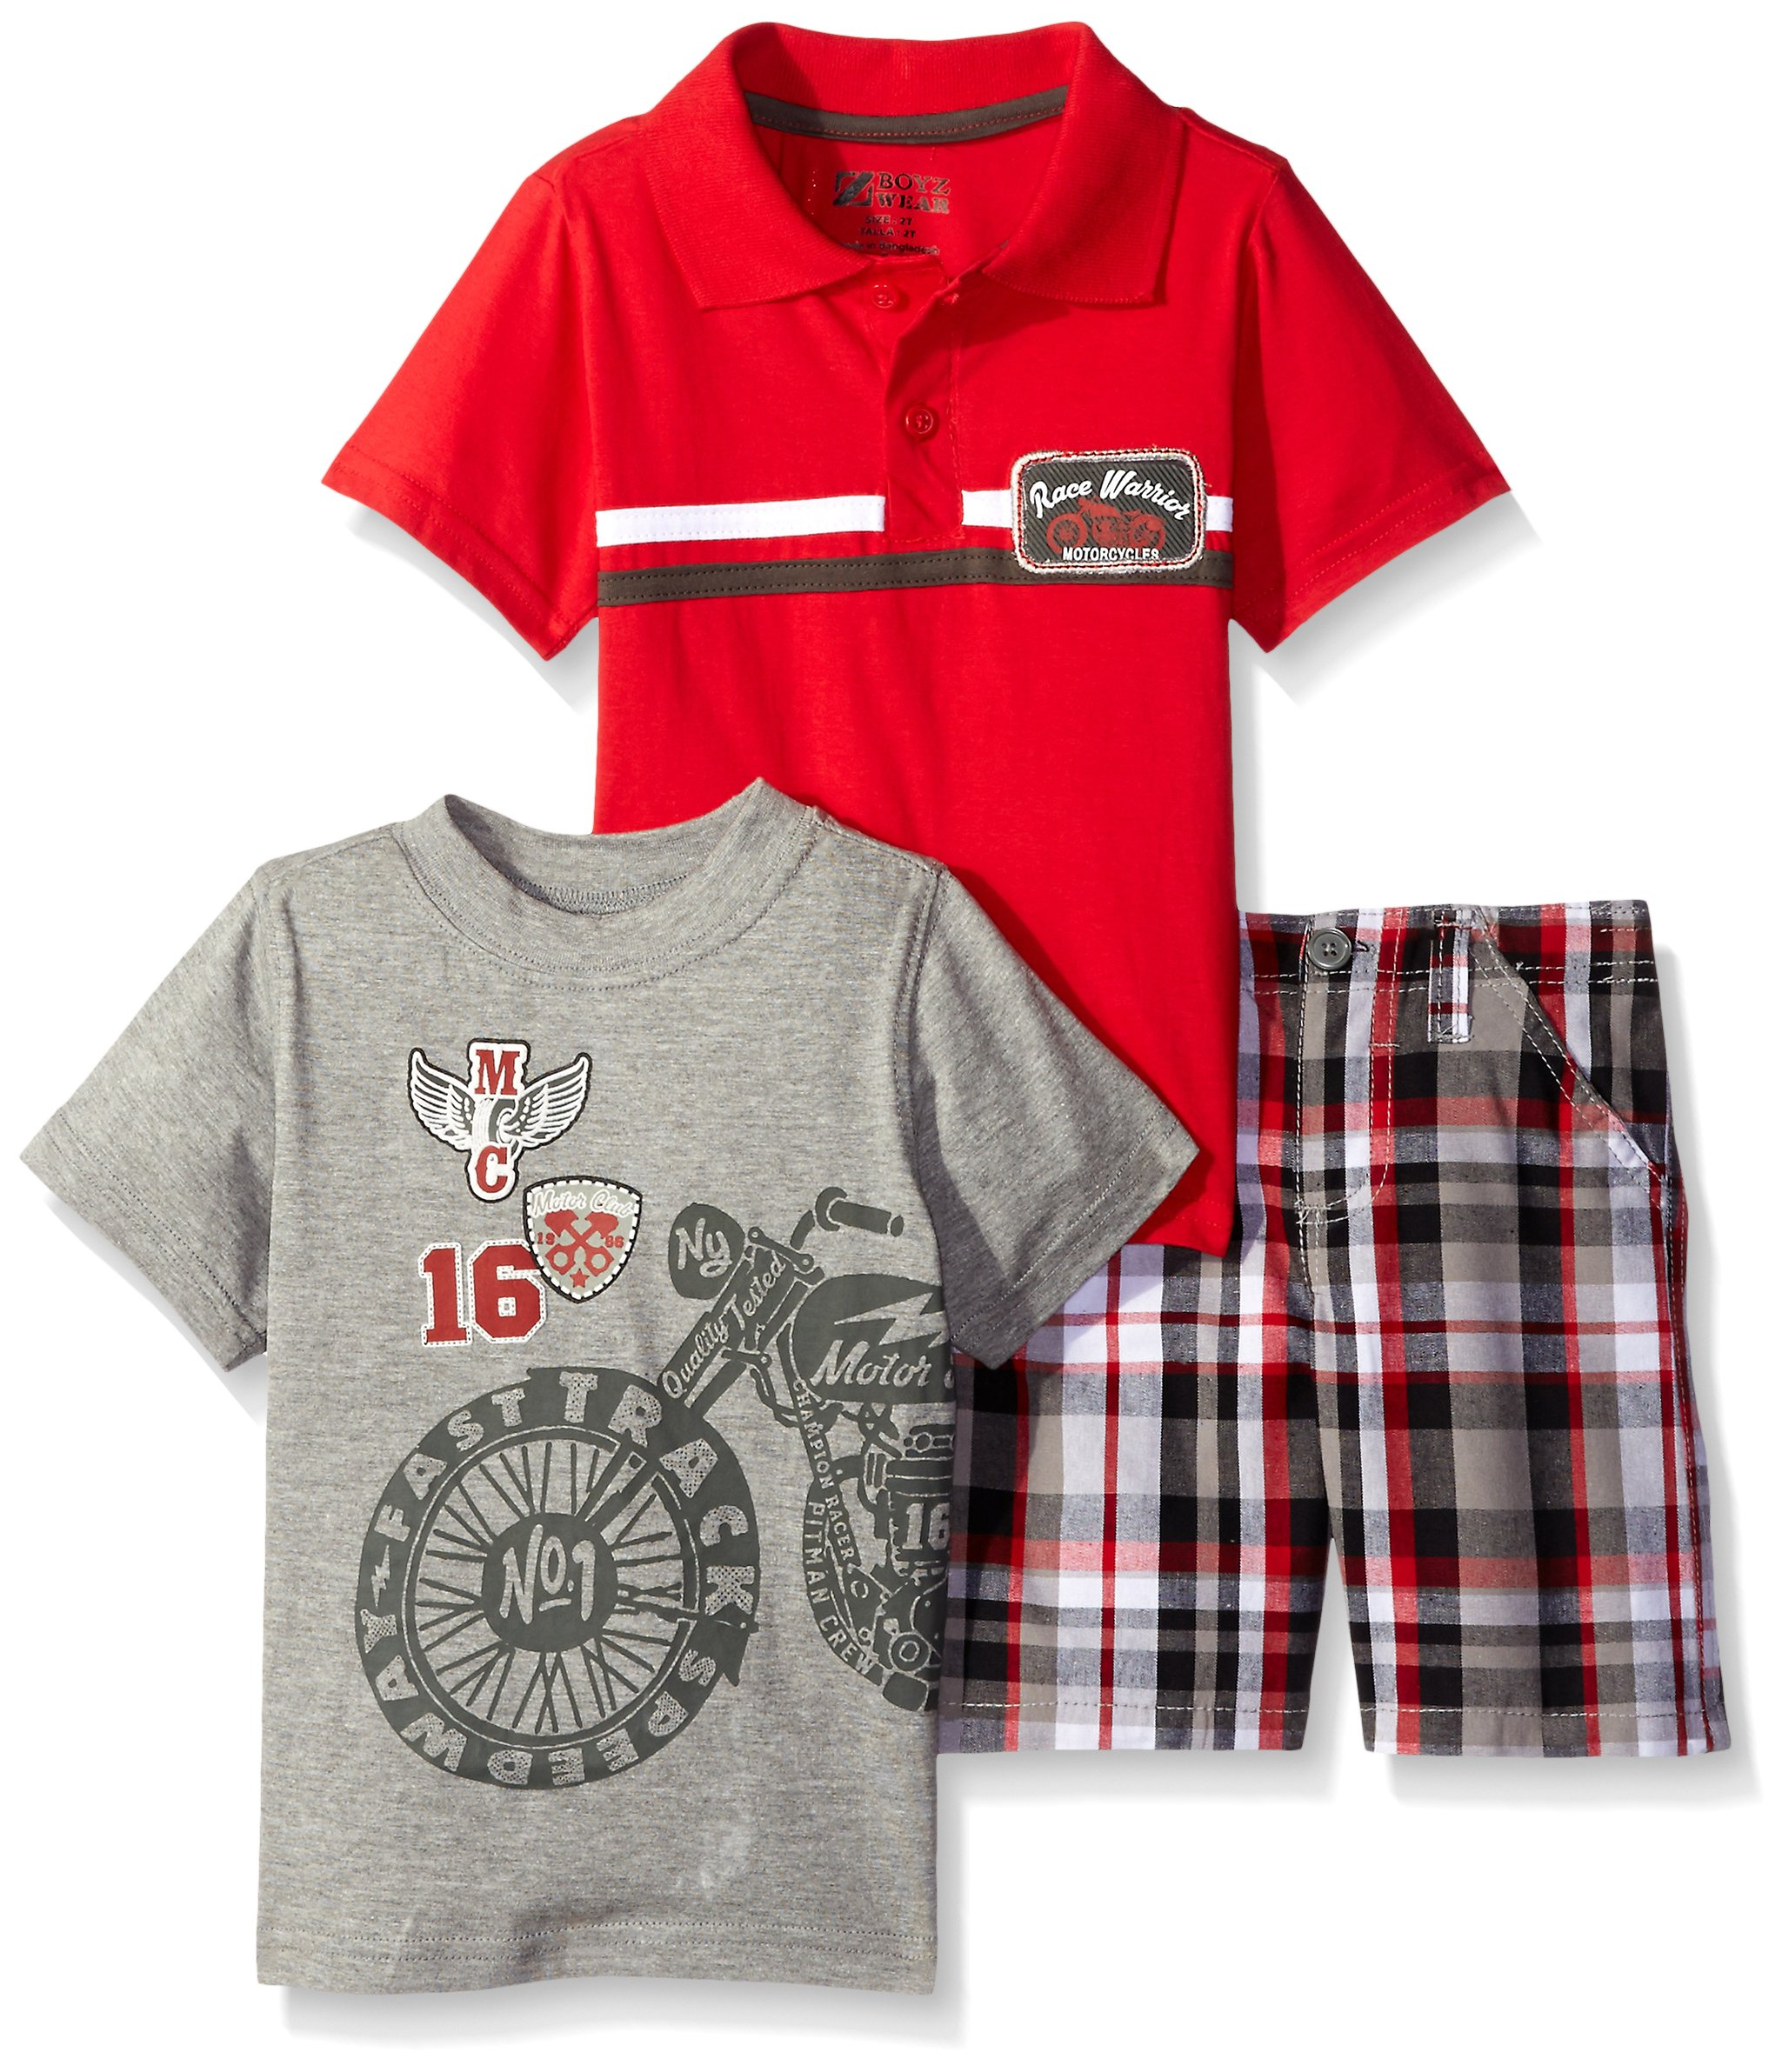 BoyzWear Little Boys' 3 Piece Motorcycle Tee and Polo Shirt with Plaid Short, Red, 5